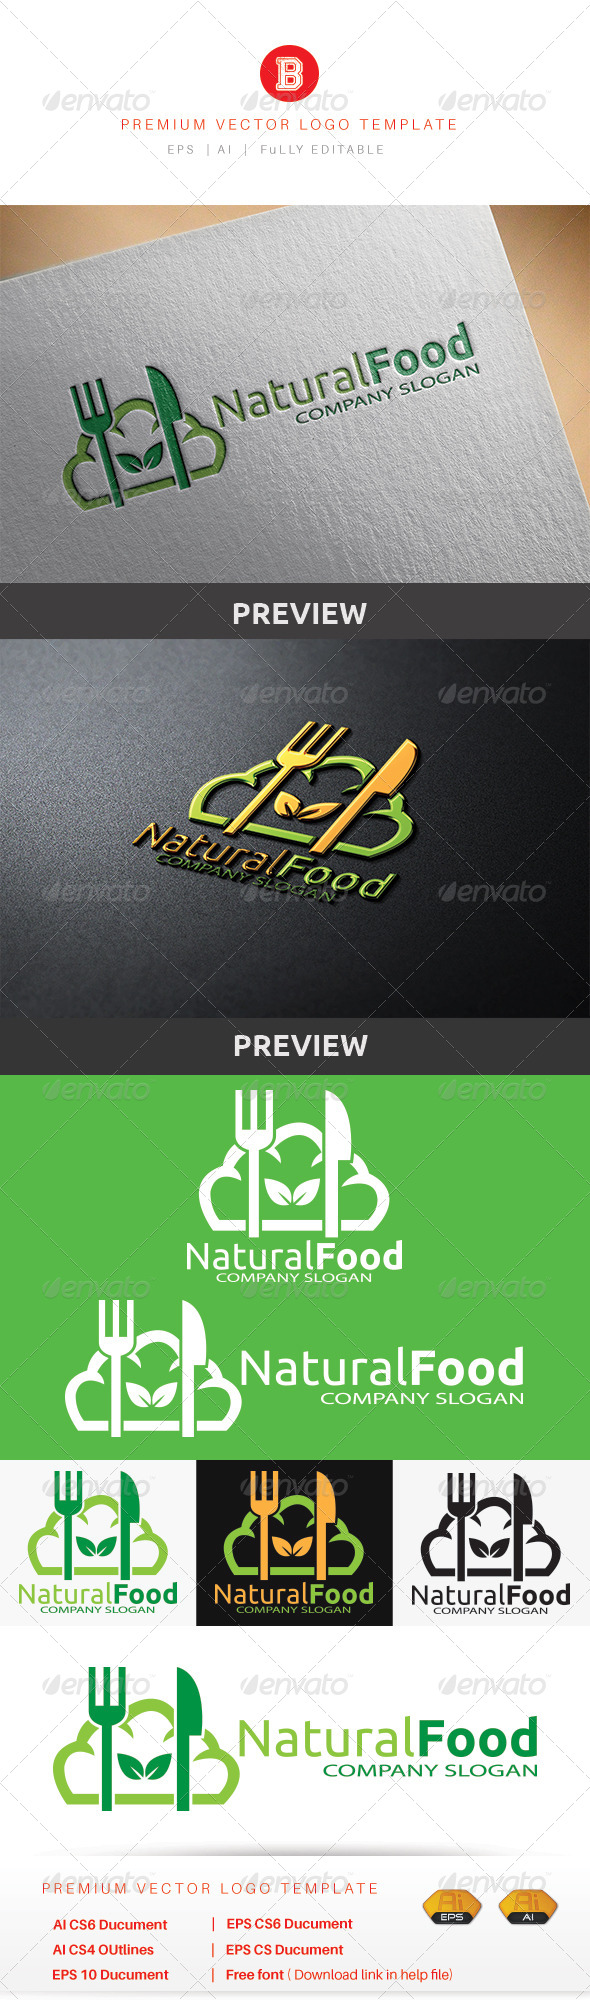 GraphicRiver Natural Food 8737850